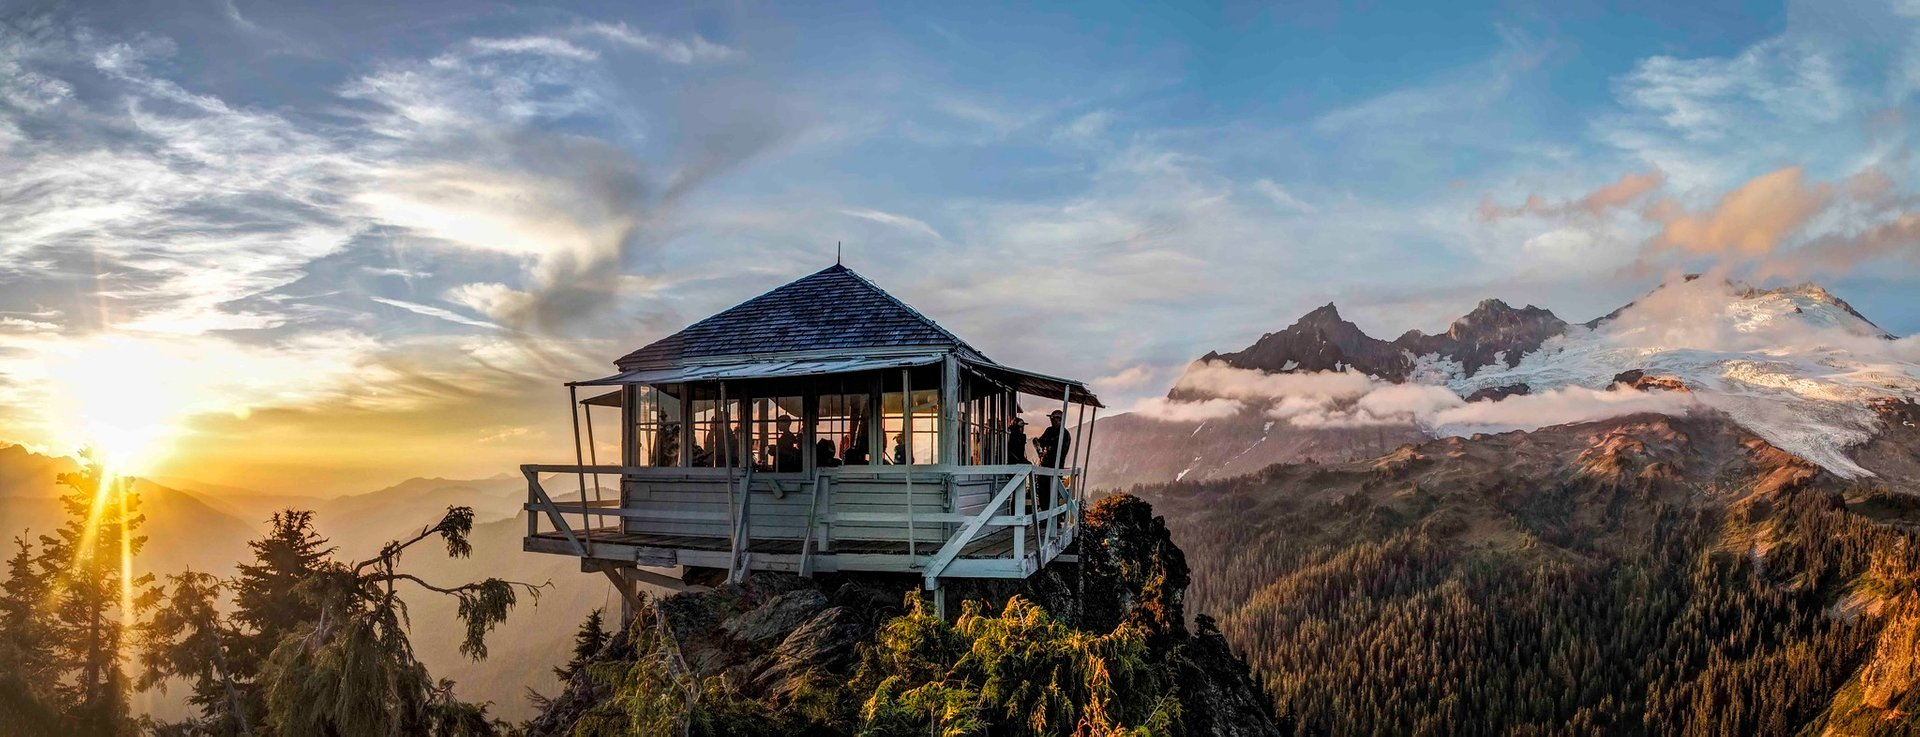 Best time for Park Butte Lookout in Washington 2020